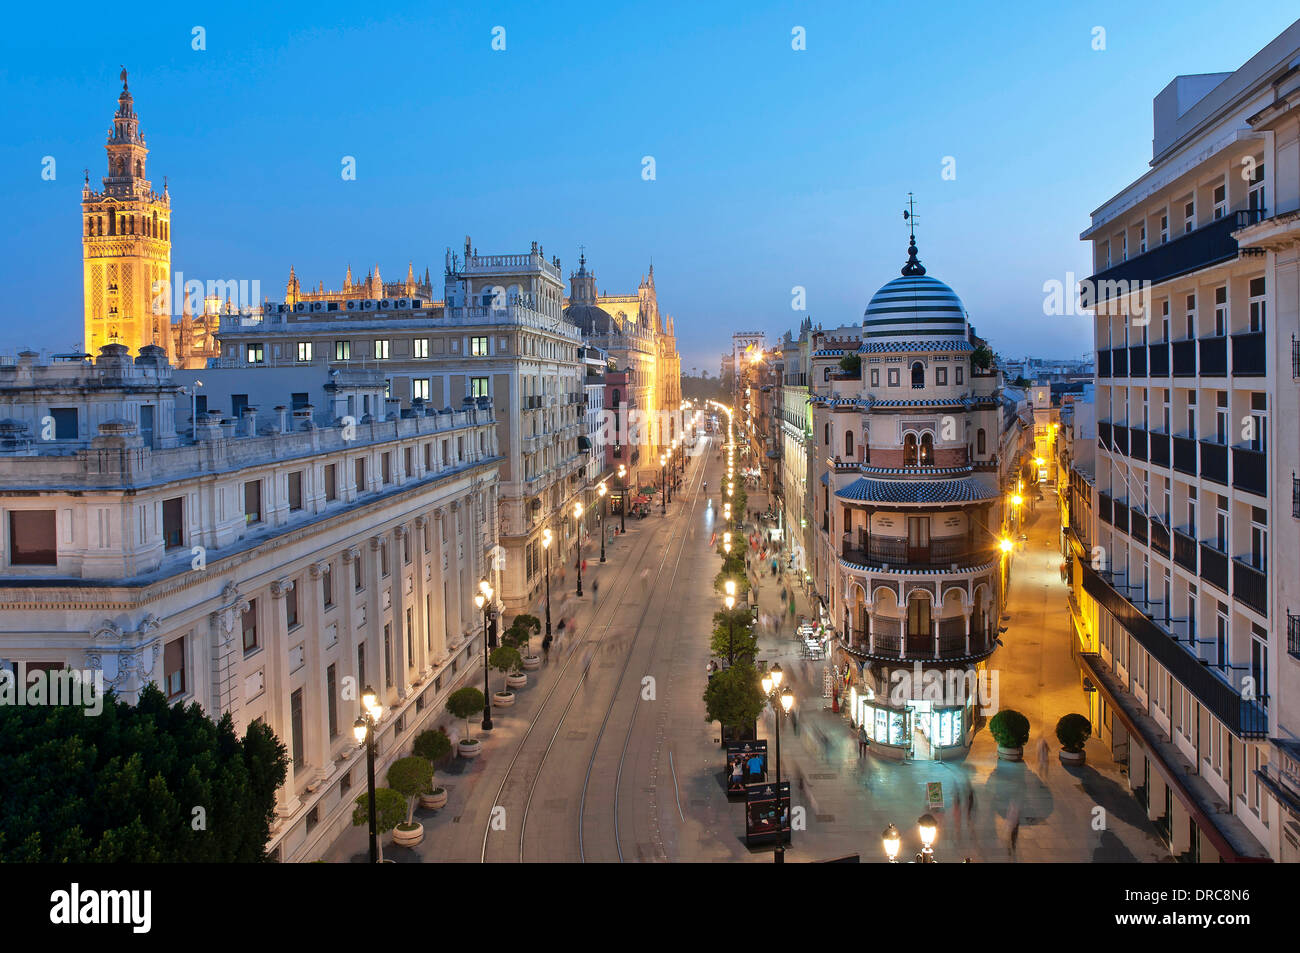 Constitution avenue and Giralda tower, Seville, Region of Andalusia, Spain, Europe, Stock Photo